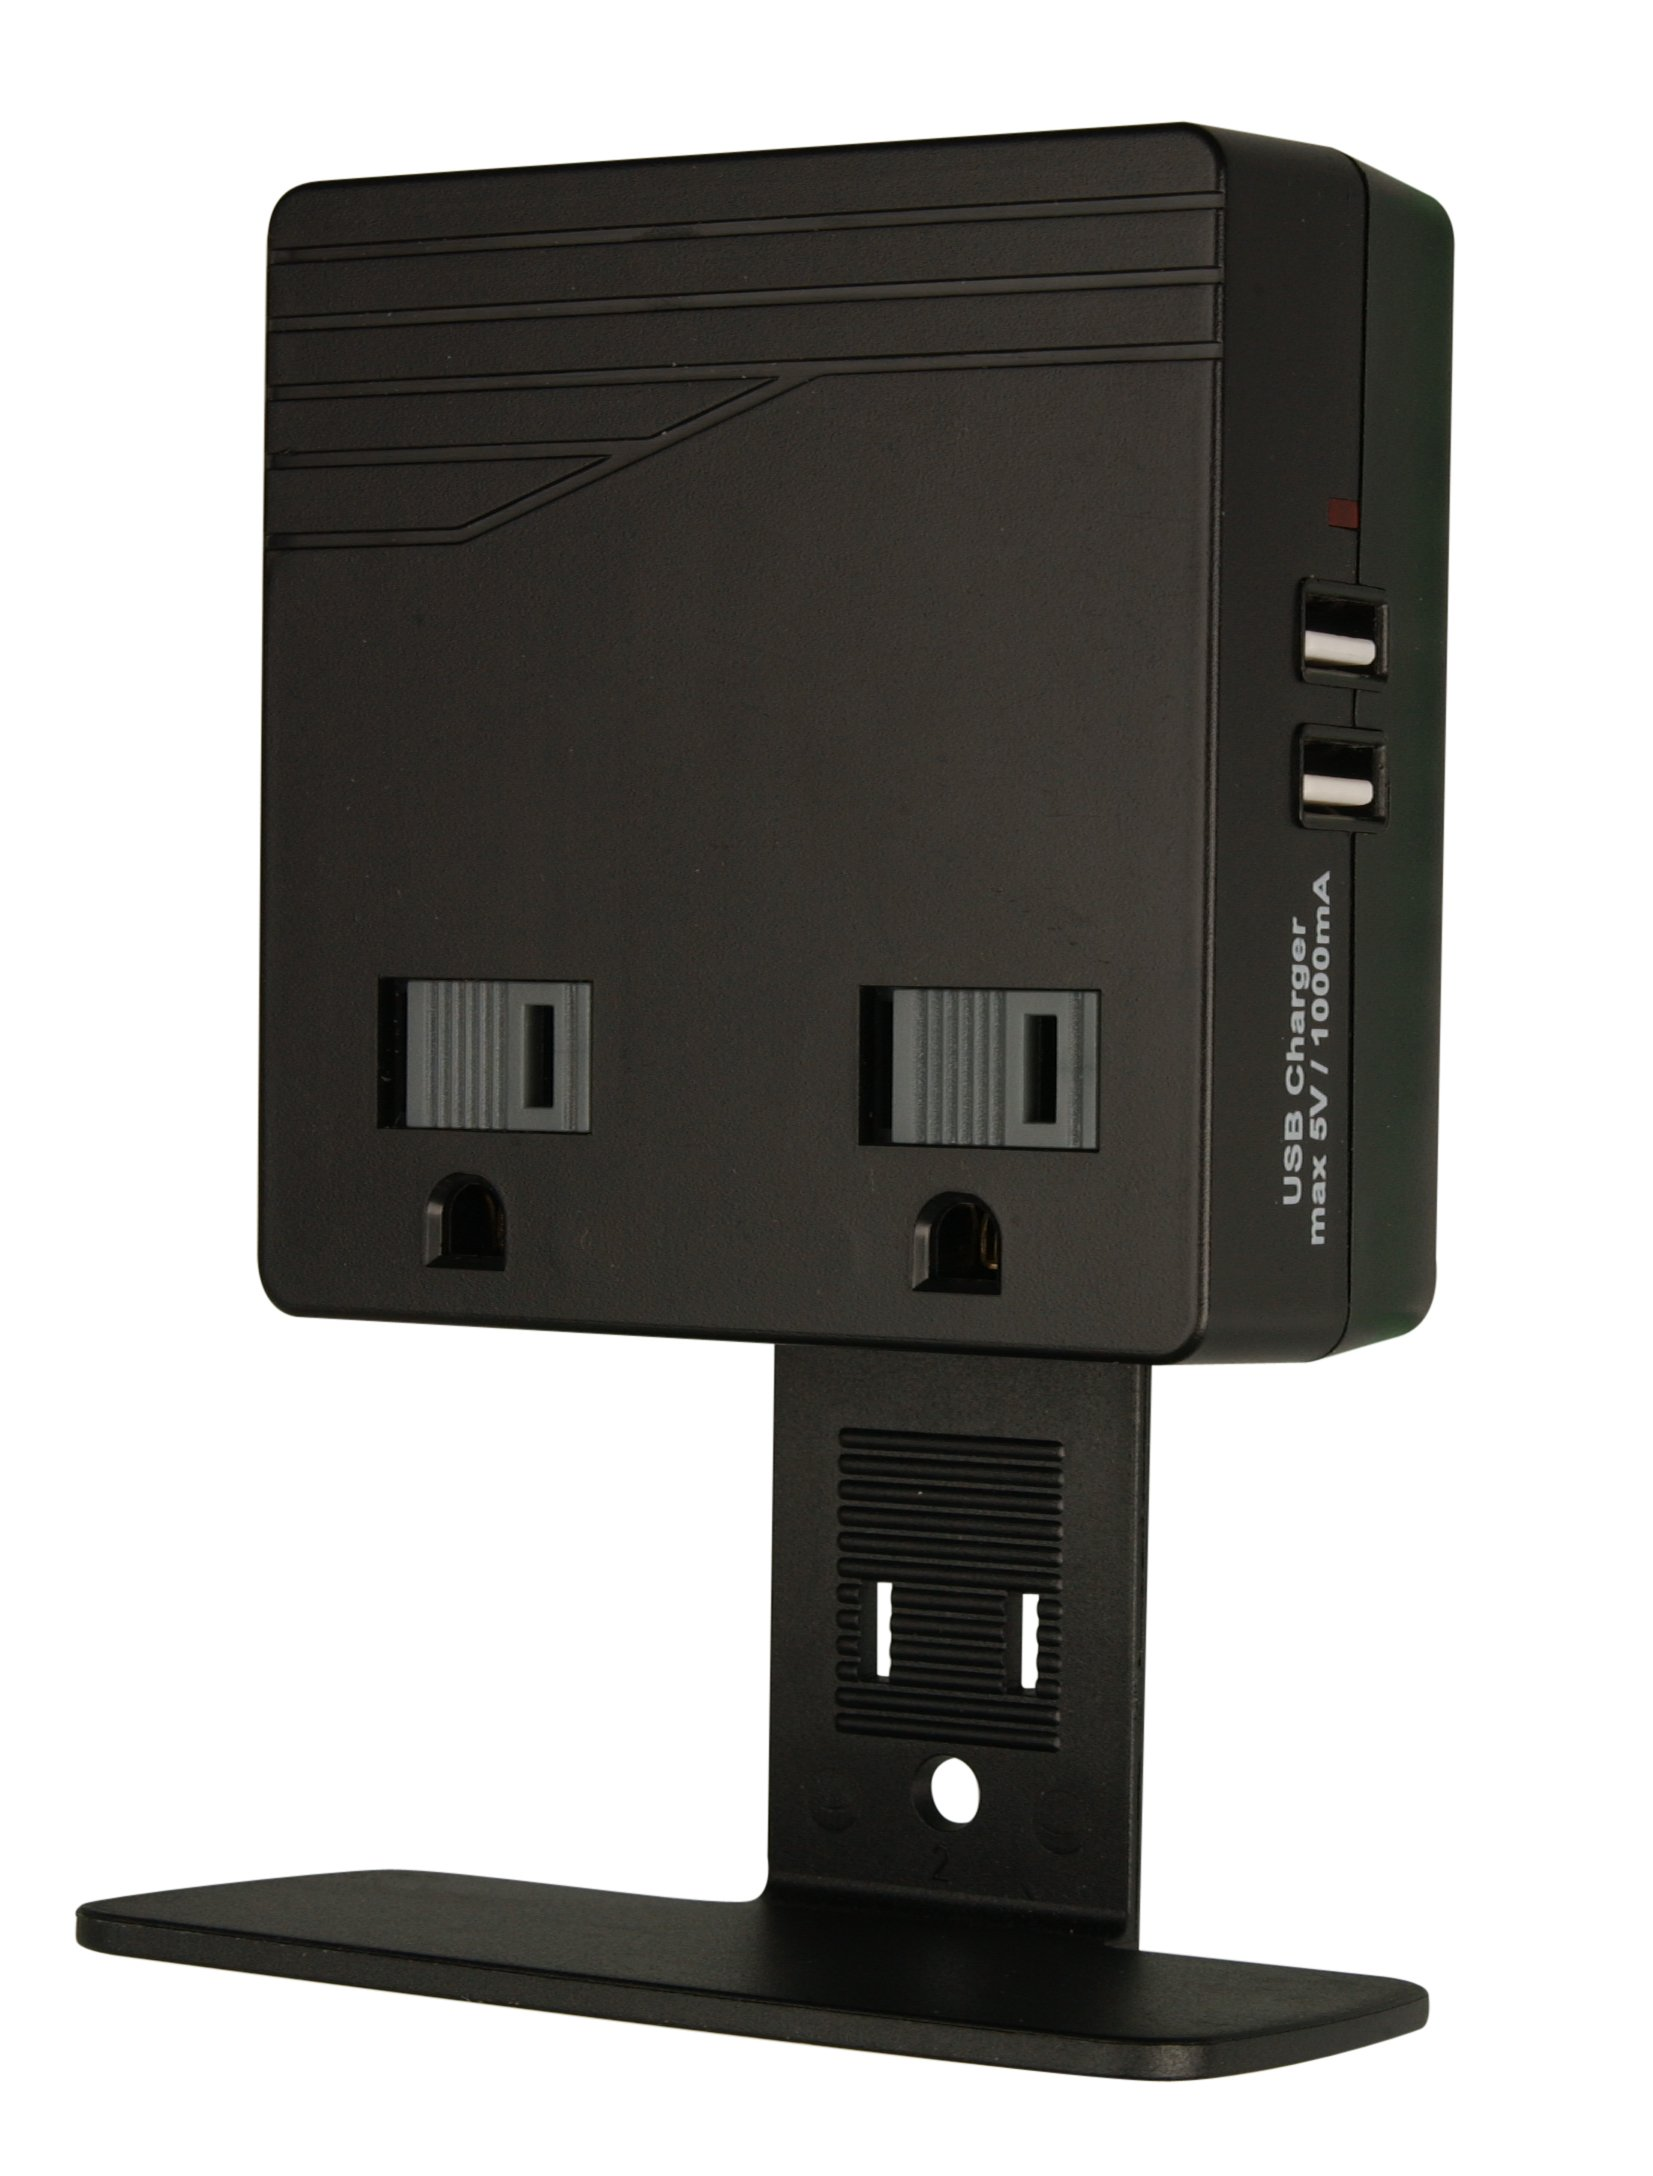 Woods 041050 USB Charger Combo 2-Outlet Surge Protector, Black, 450 Joules of Protection by Woods (Image #3)